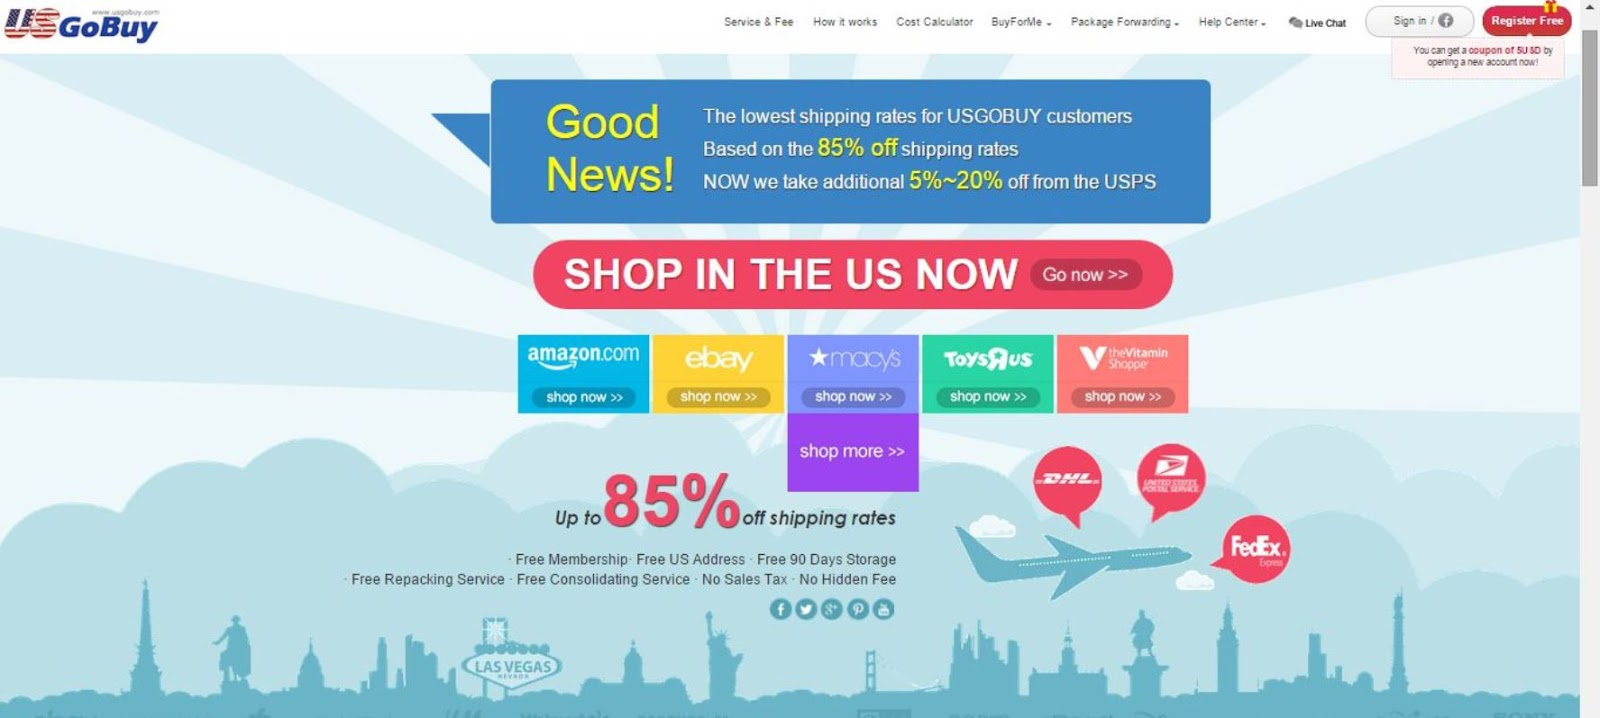 Package forwarding services for online shopping